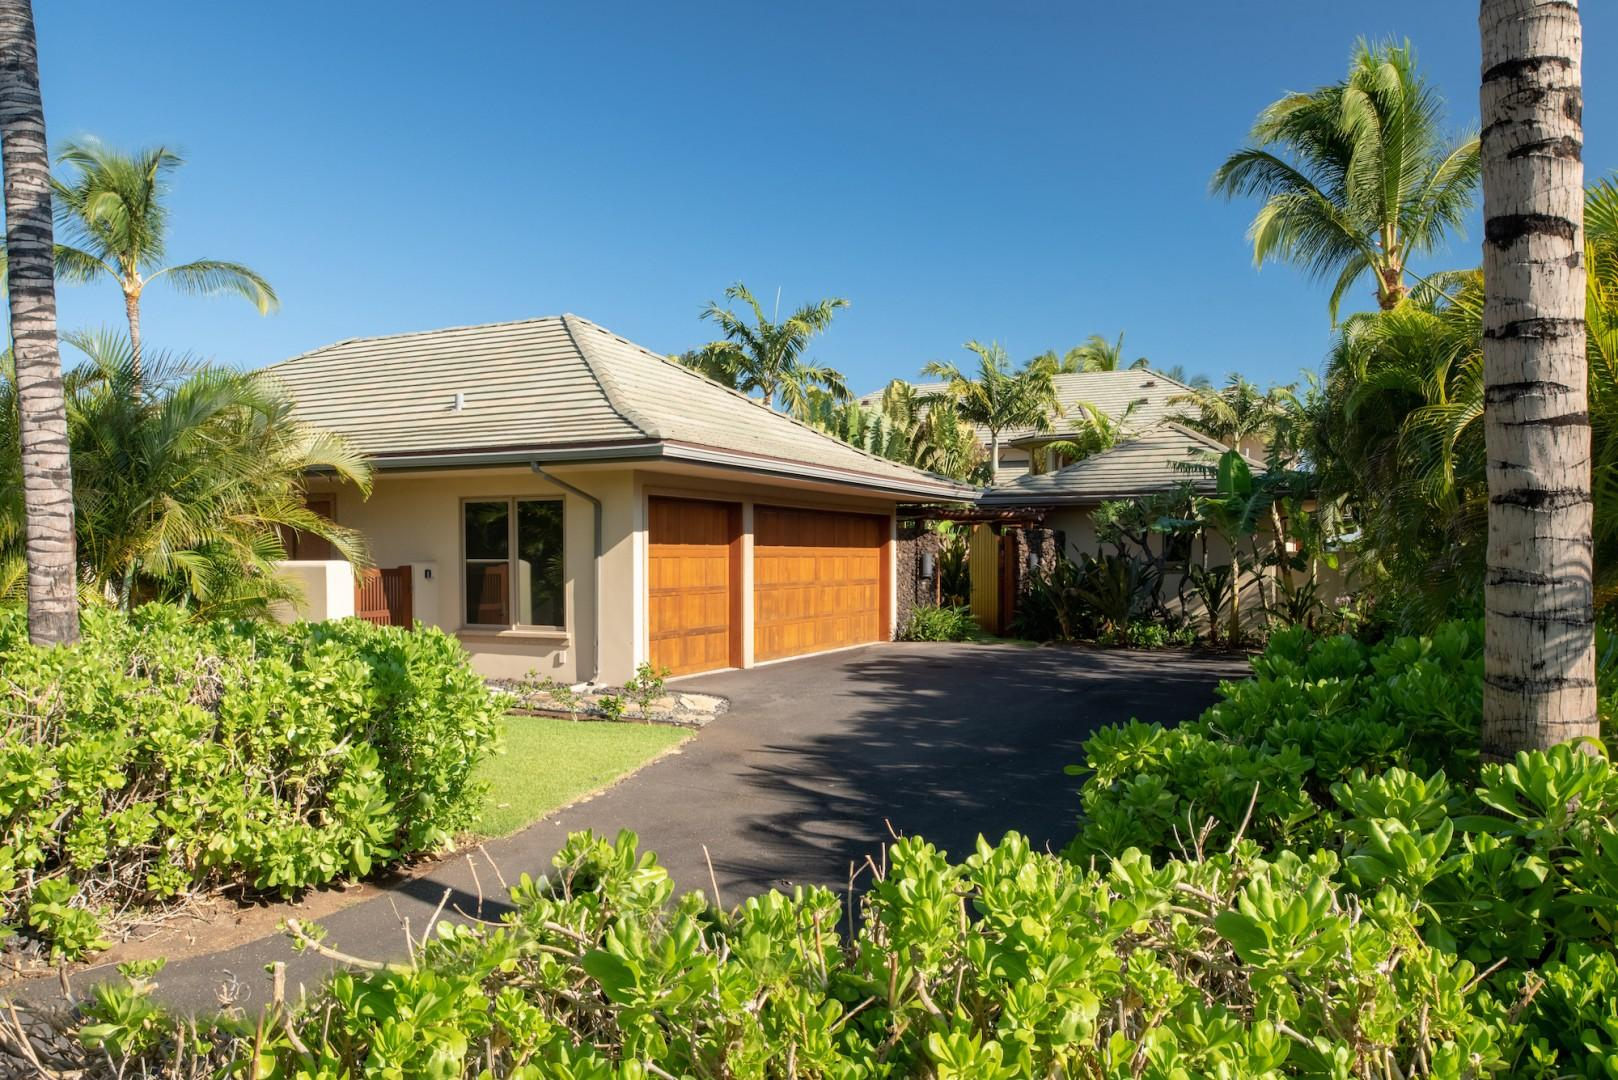 Ample Private Parking in the Home's Driveway and Garage